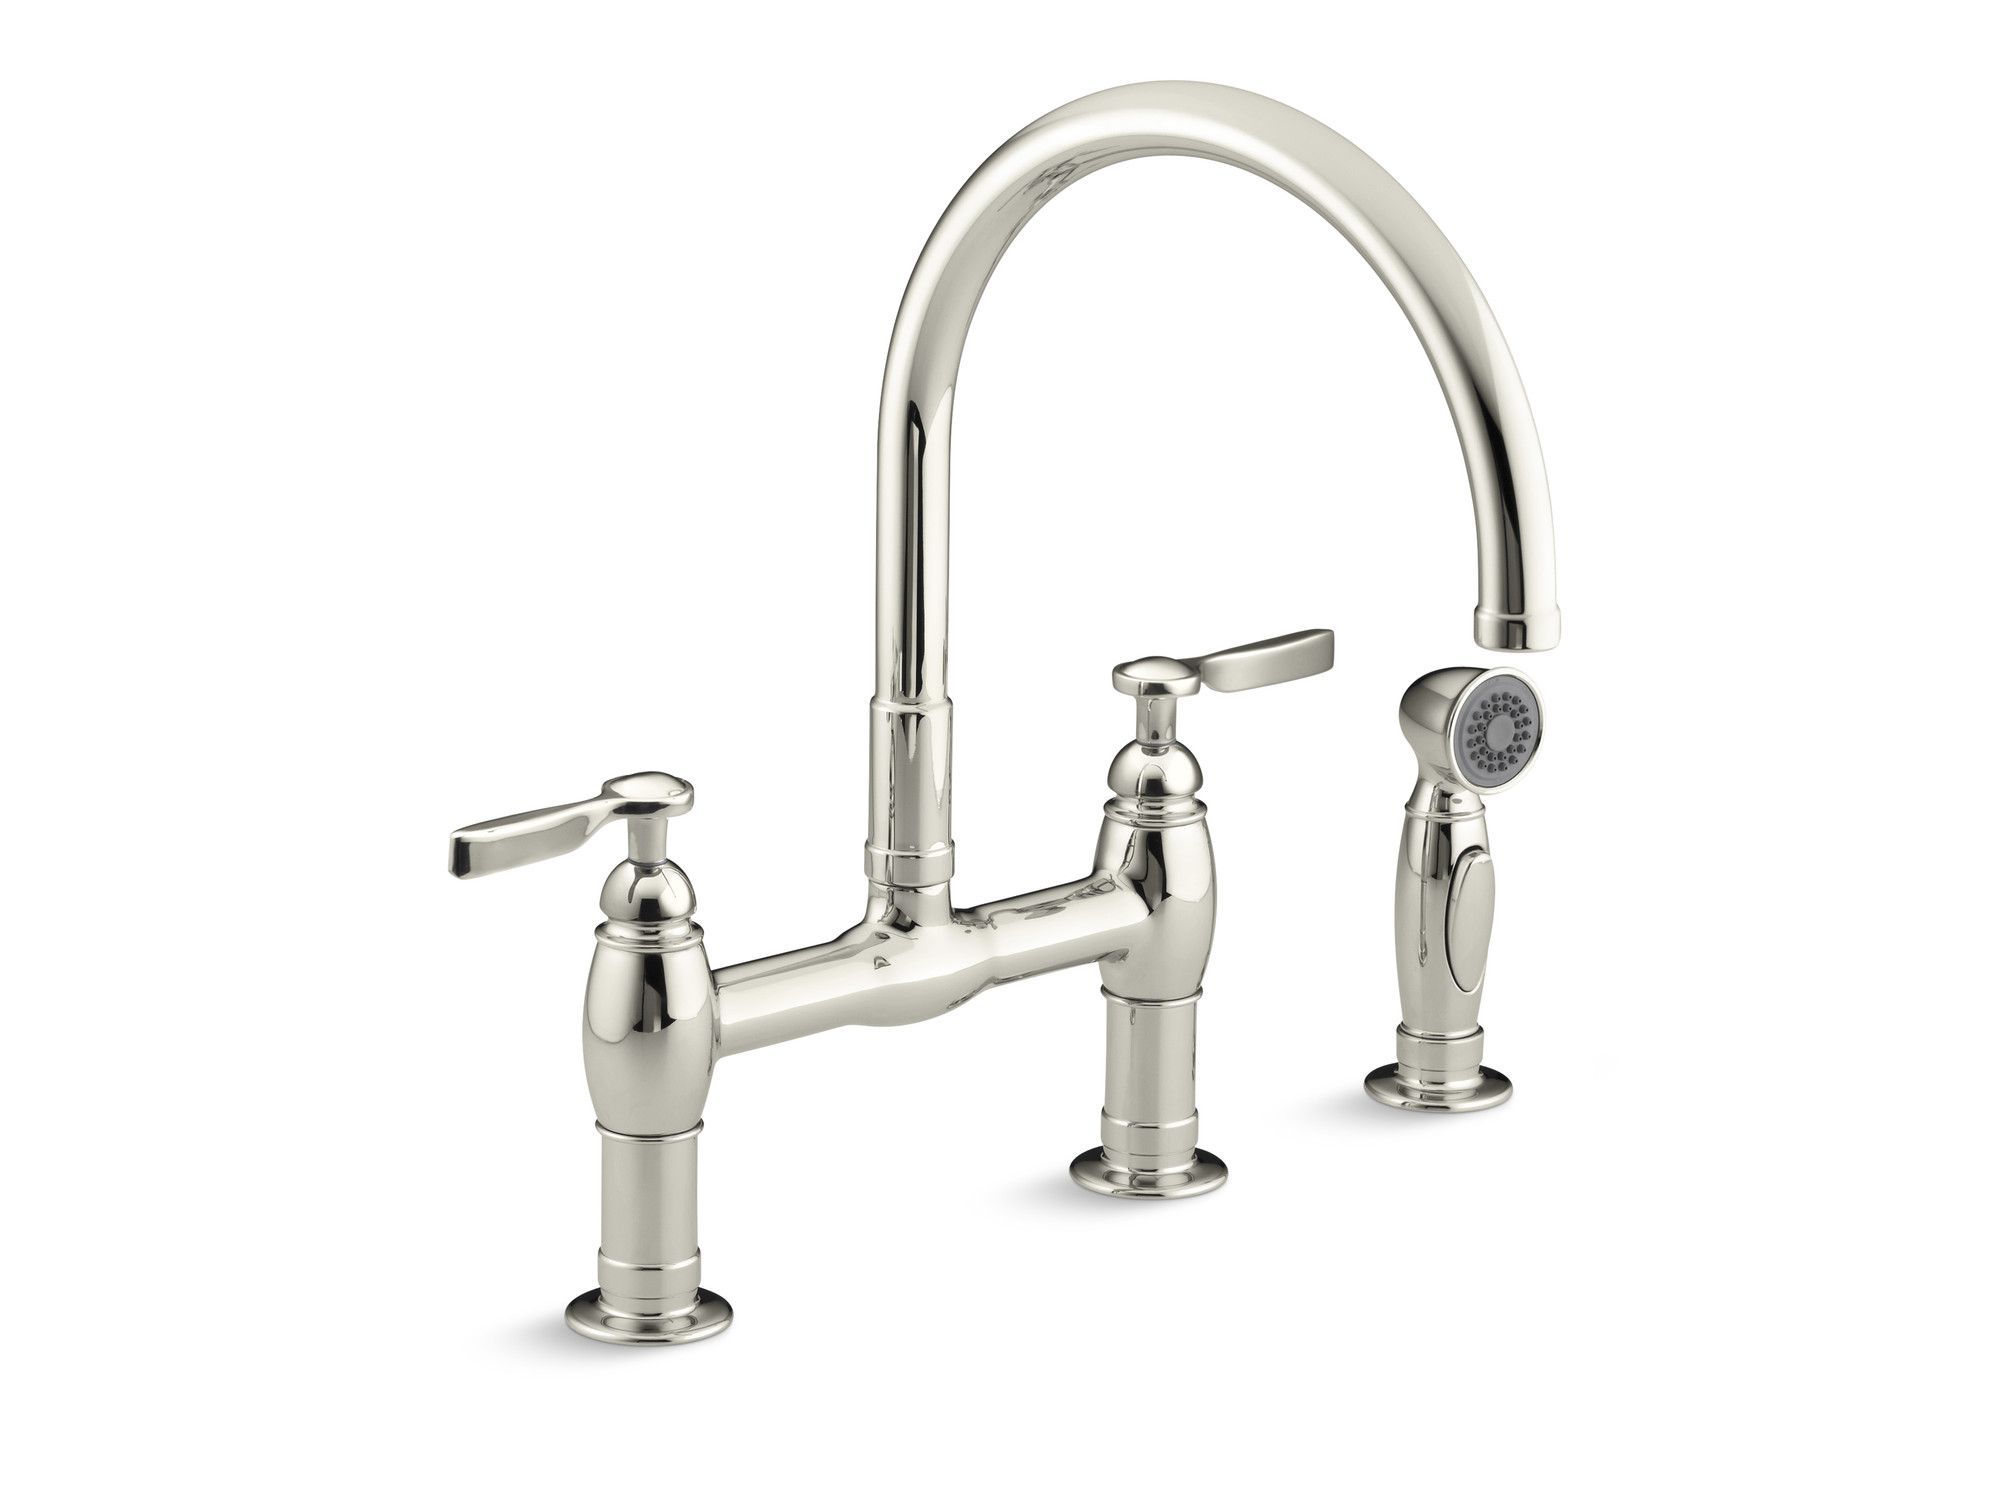 Parq Pull Down Touch Bridge Faucet With Side Spray And Masterclean